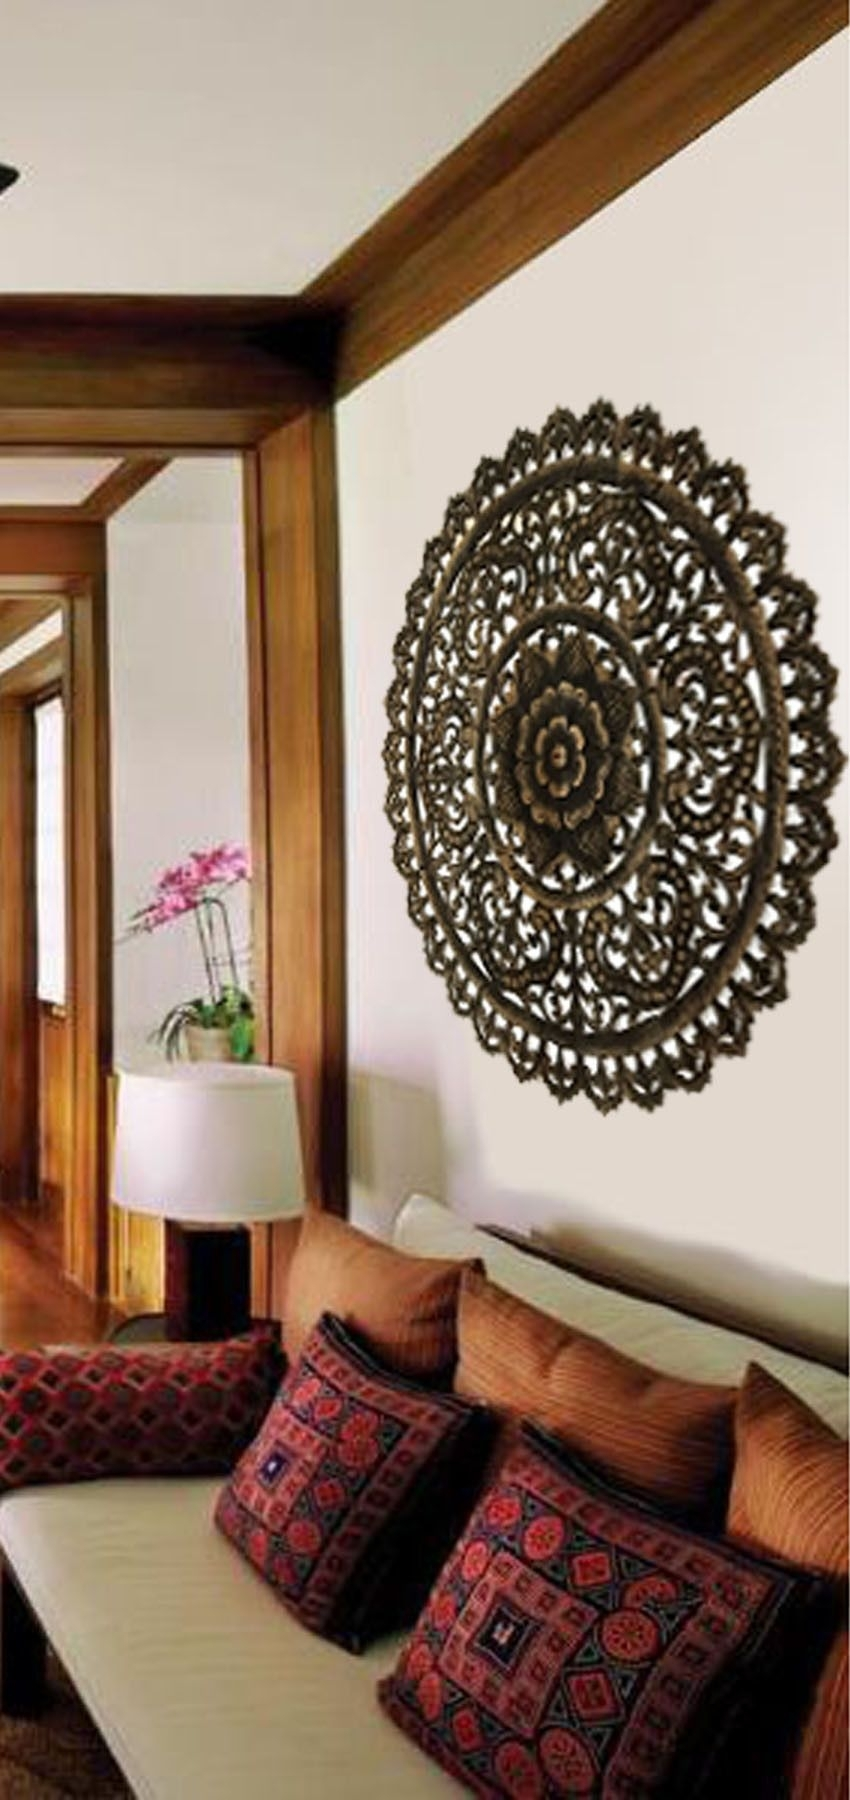 Elegant Medallion Wood Carved Wall Plaque. Large Round Wood Carving With Regard To Wood Medallion Wall Art (Photo 8 of 20)